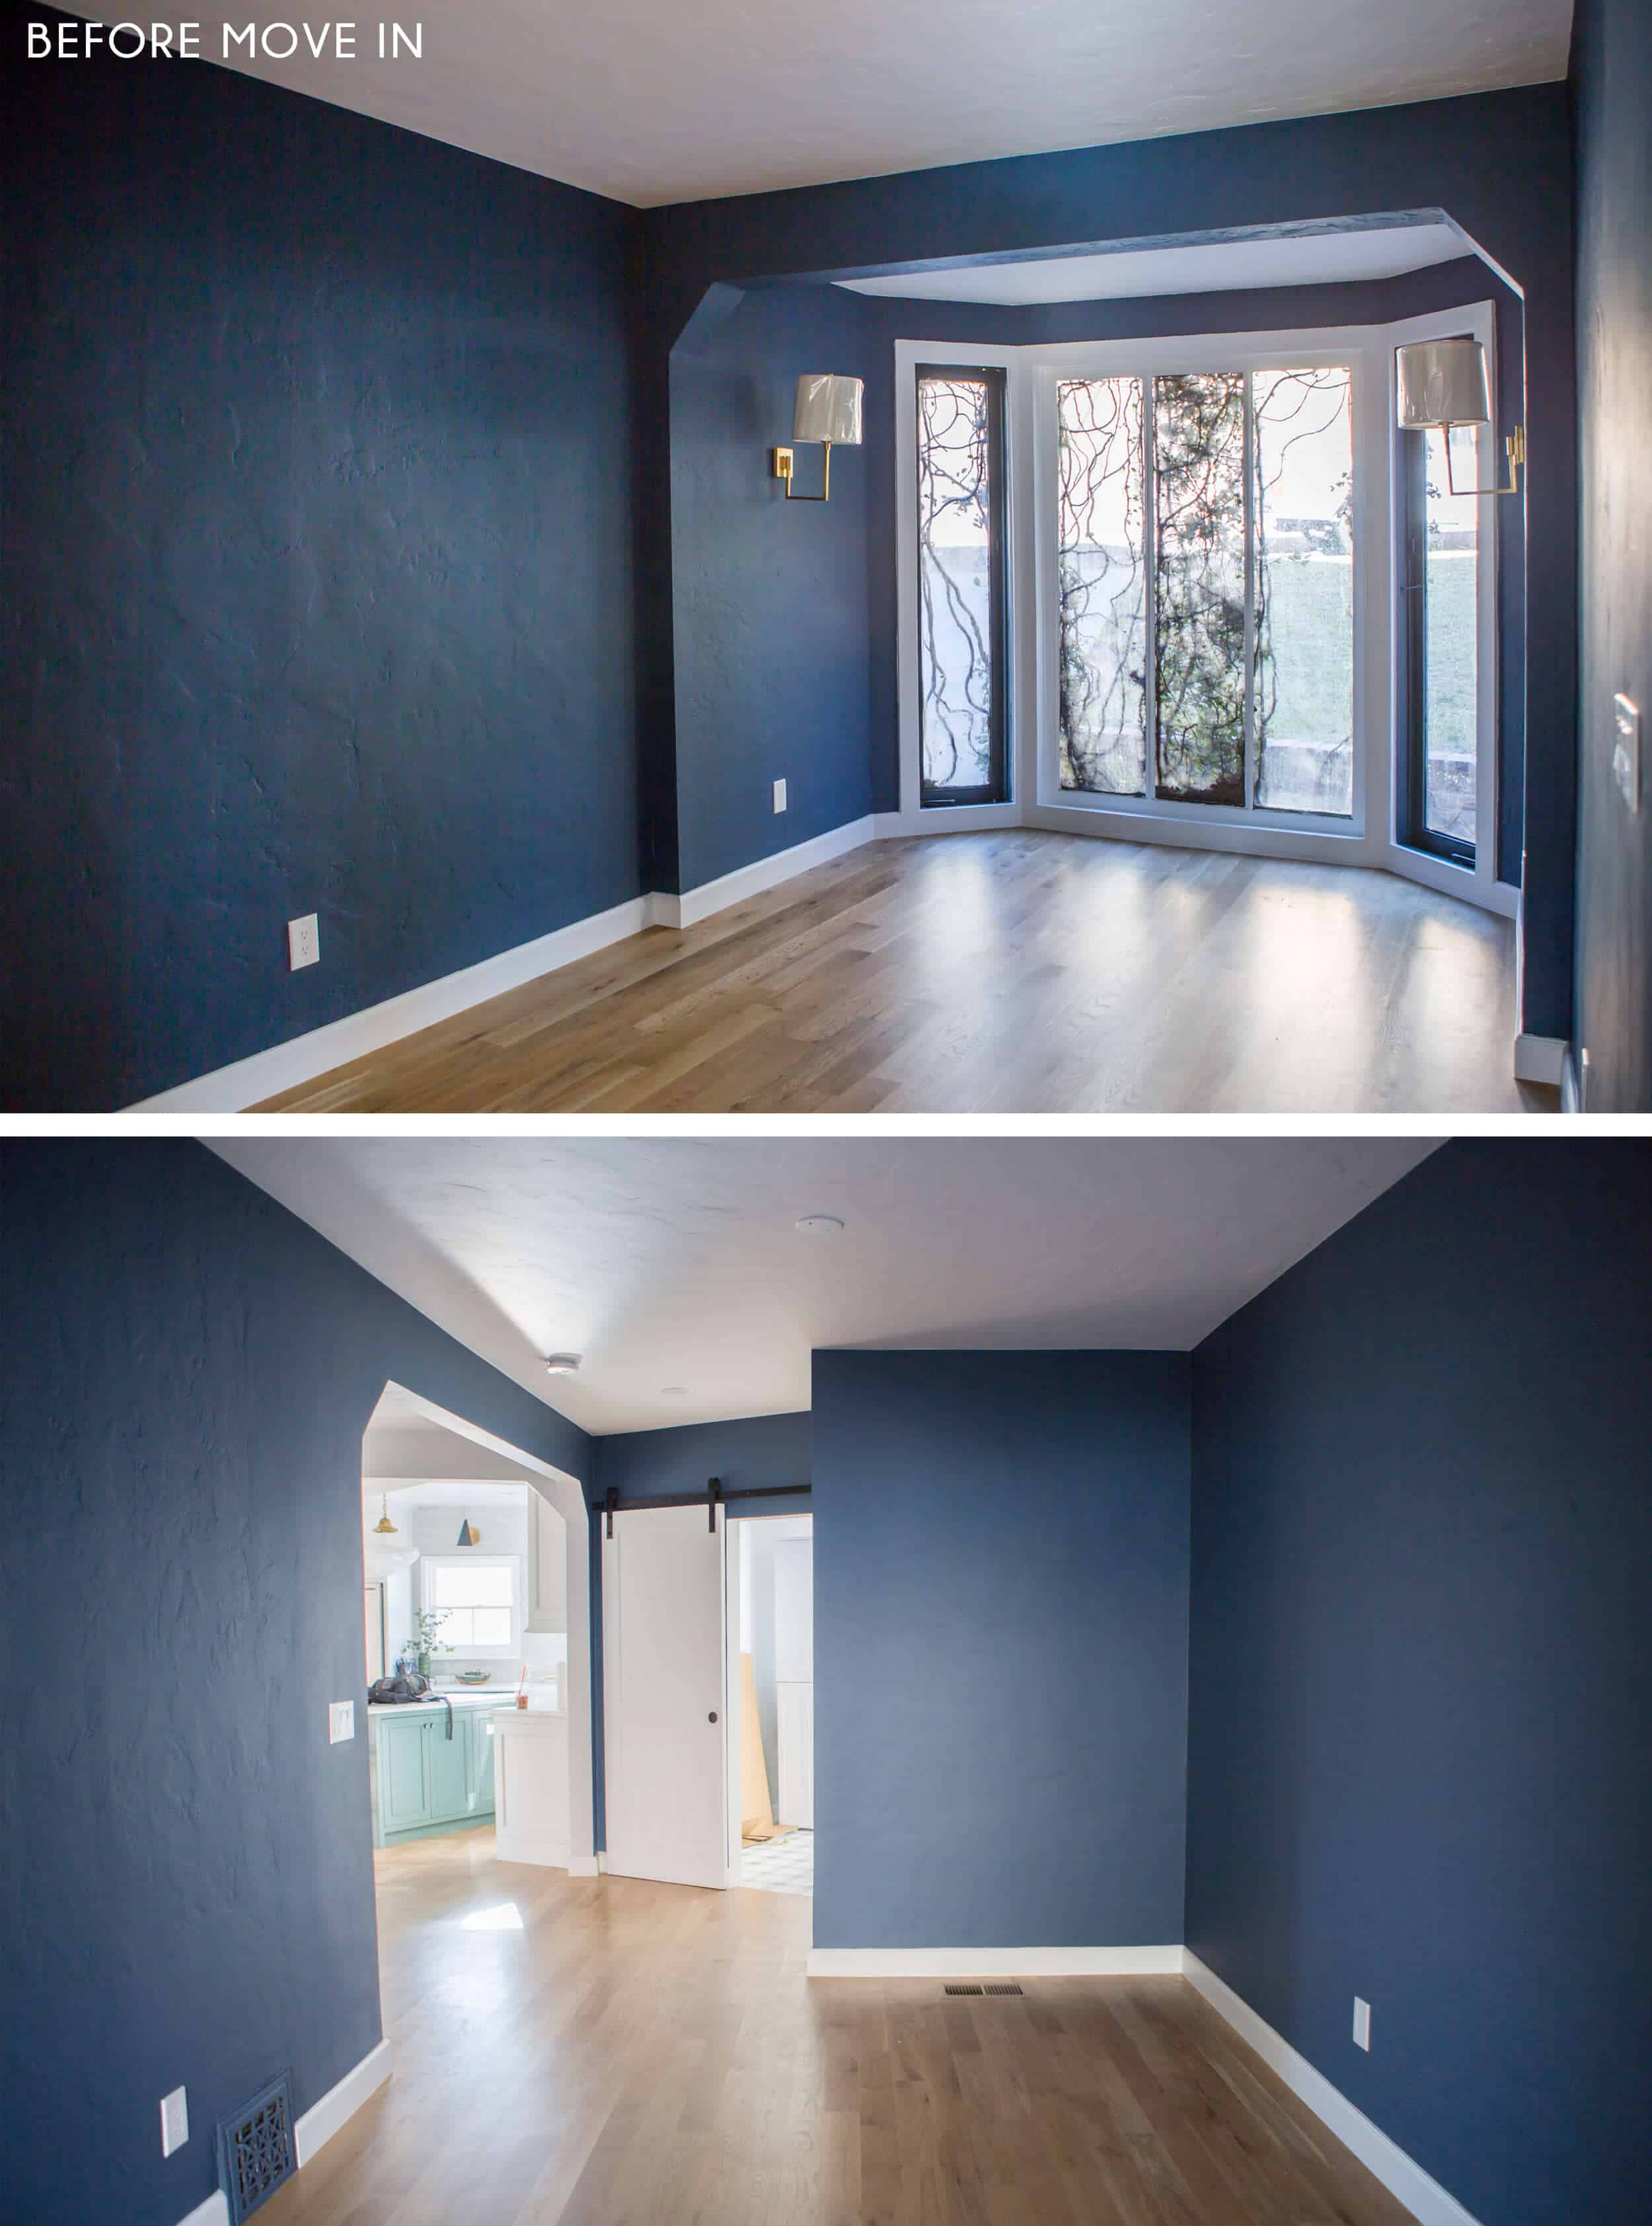 Emily-Henderson_New-House_Modern-English-Cottage_Updates_Family-Room_Side-By-Side_Before-Move-In